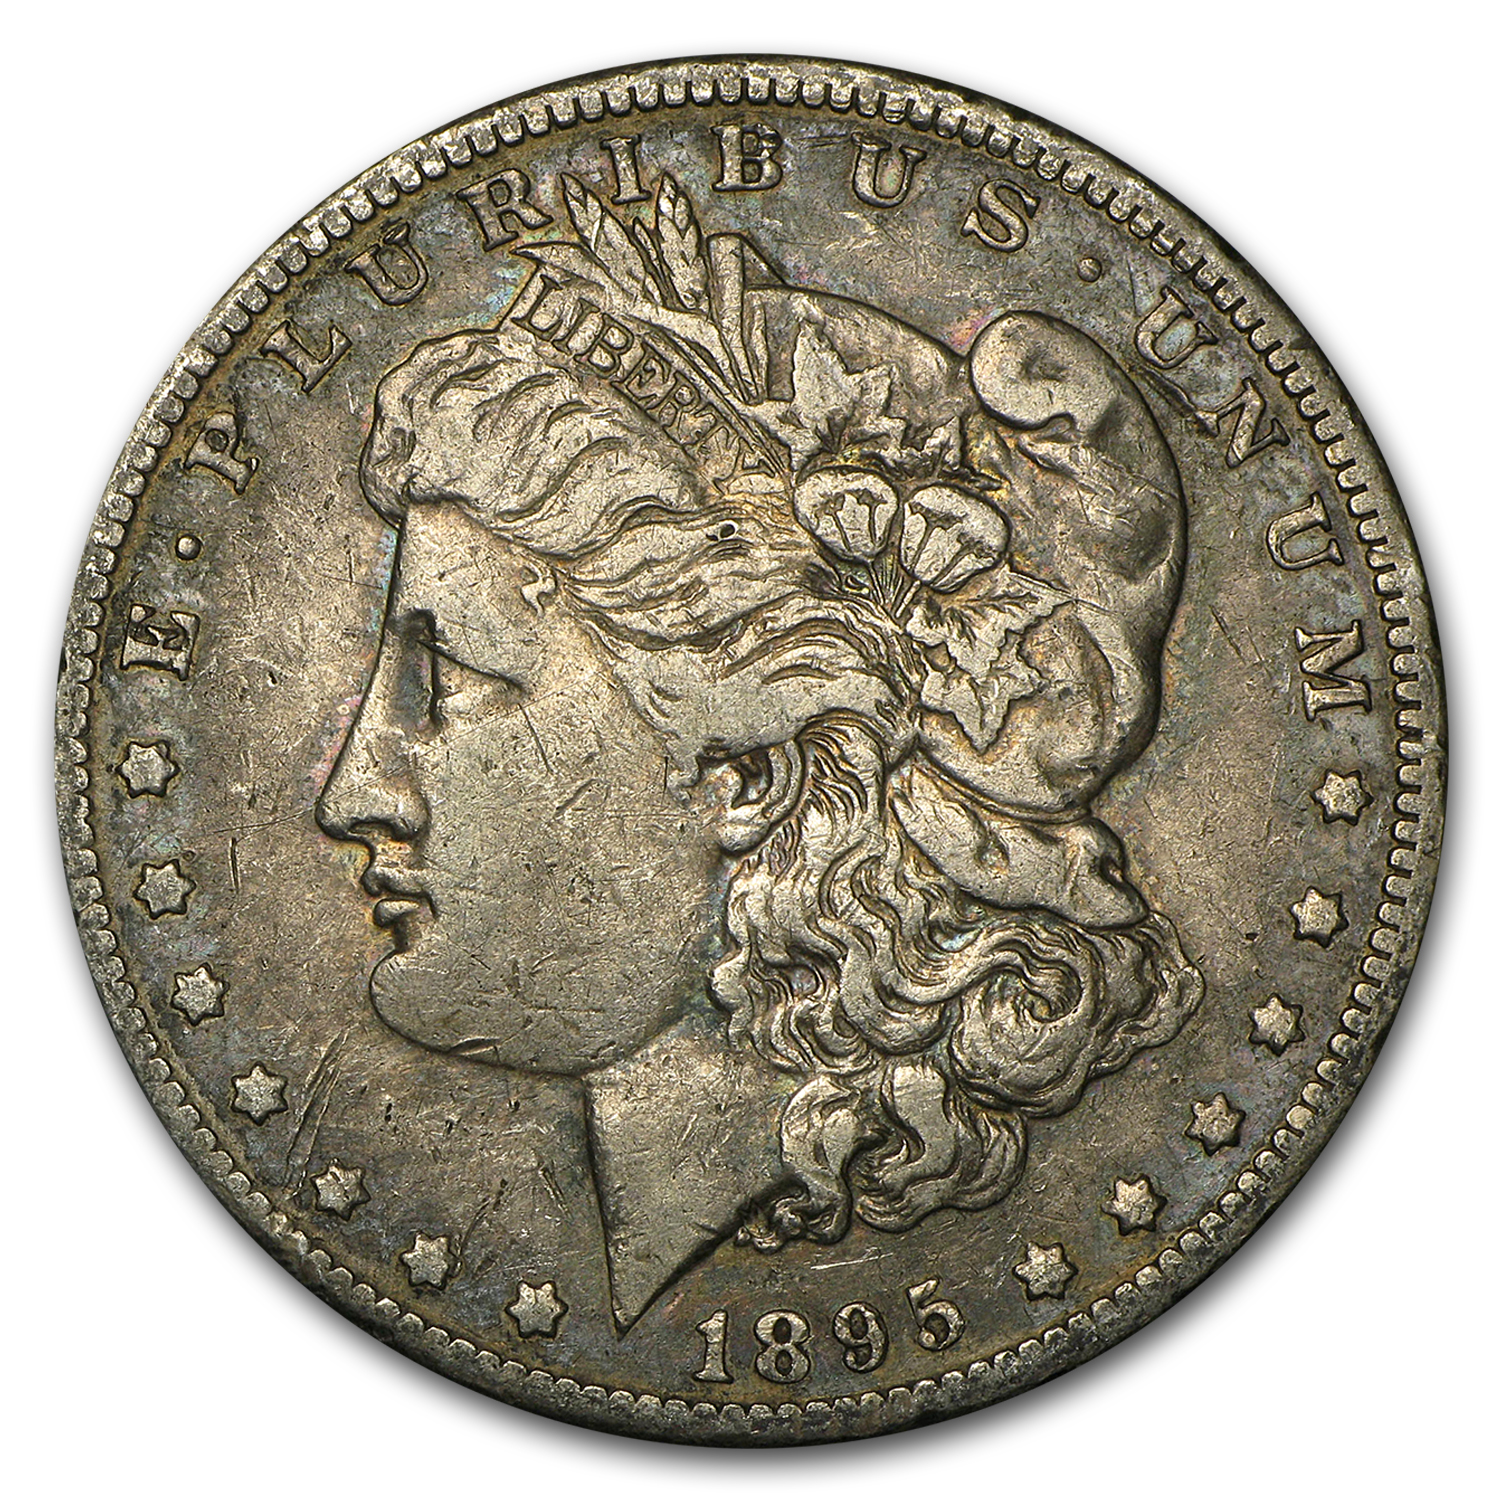 1895-O Morgan Dollar - Very Fine Details - Cleaned